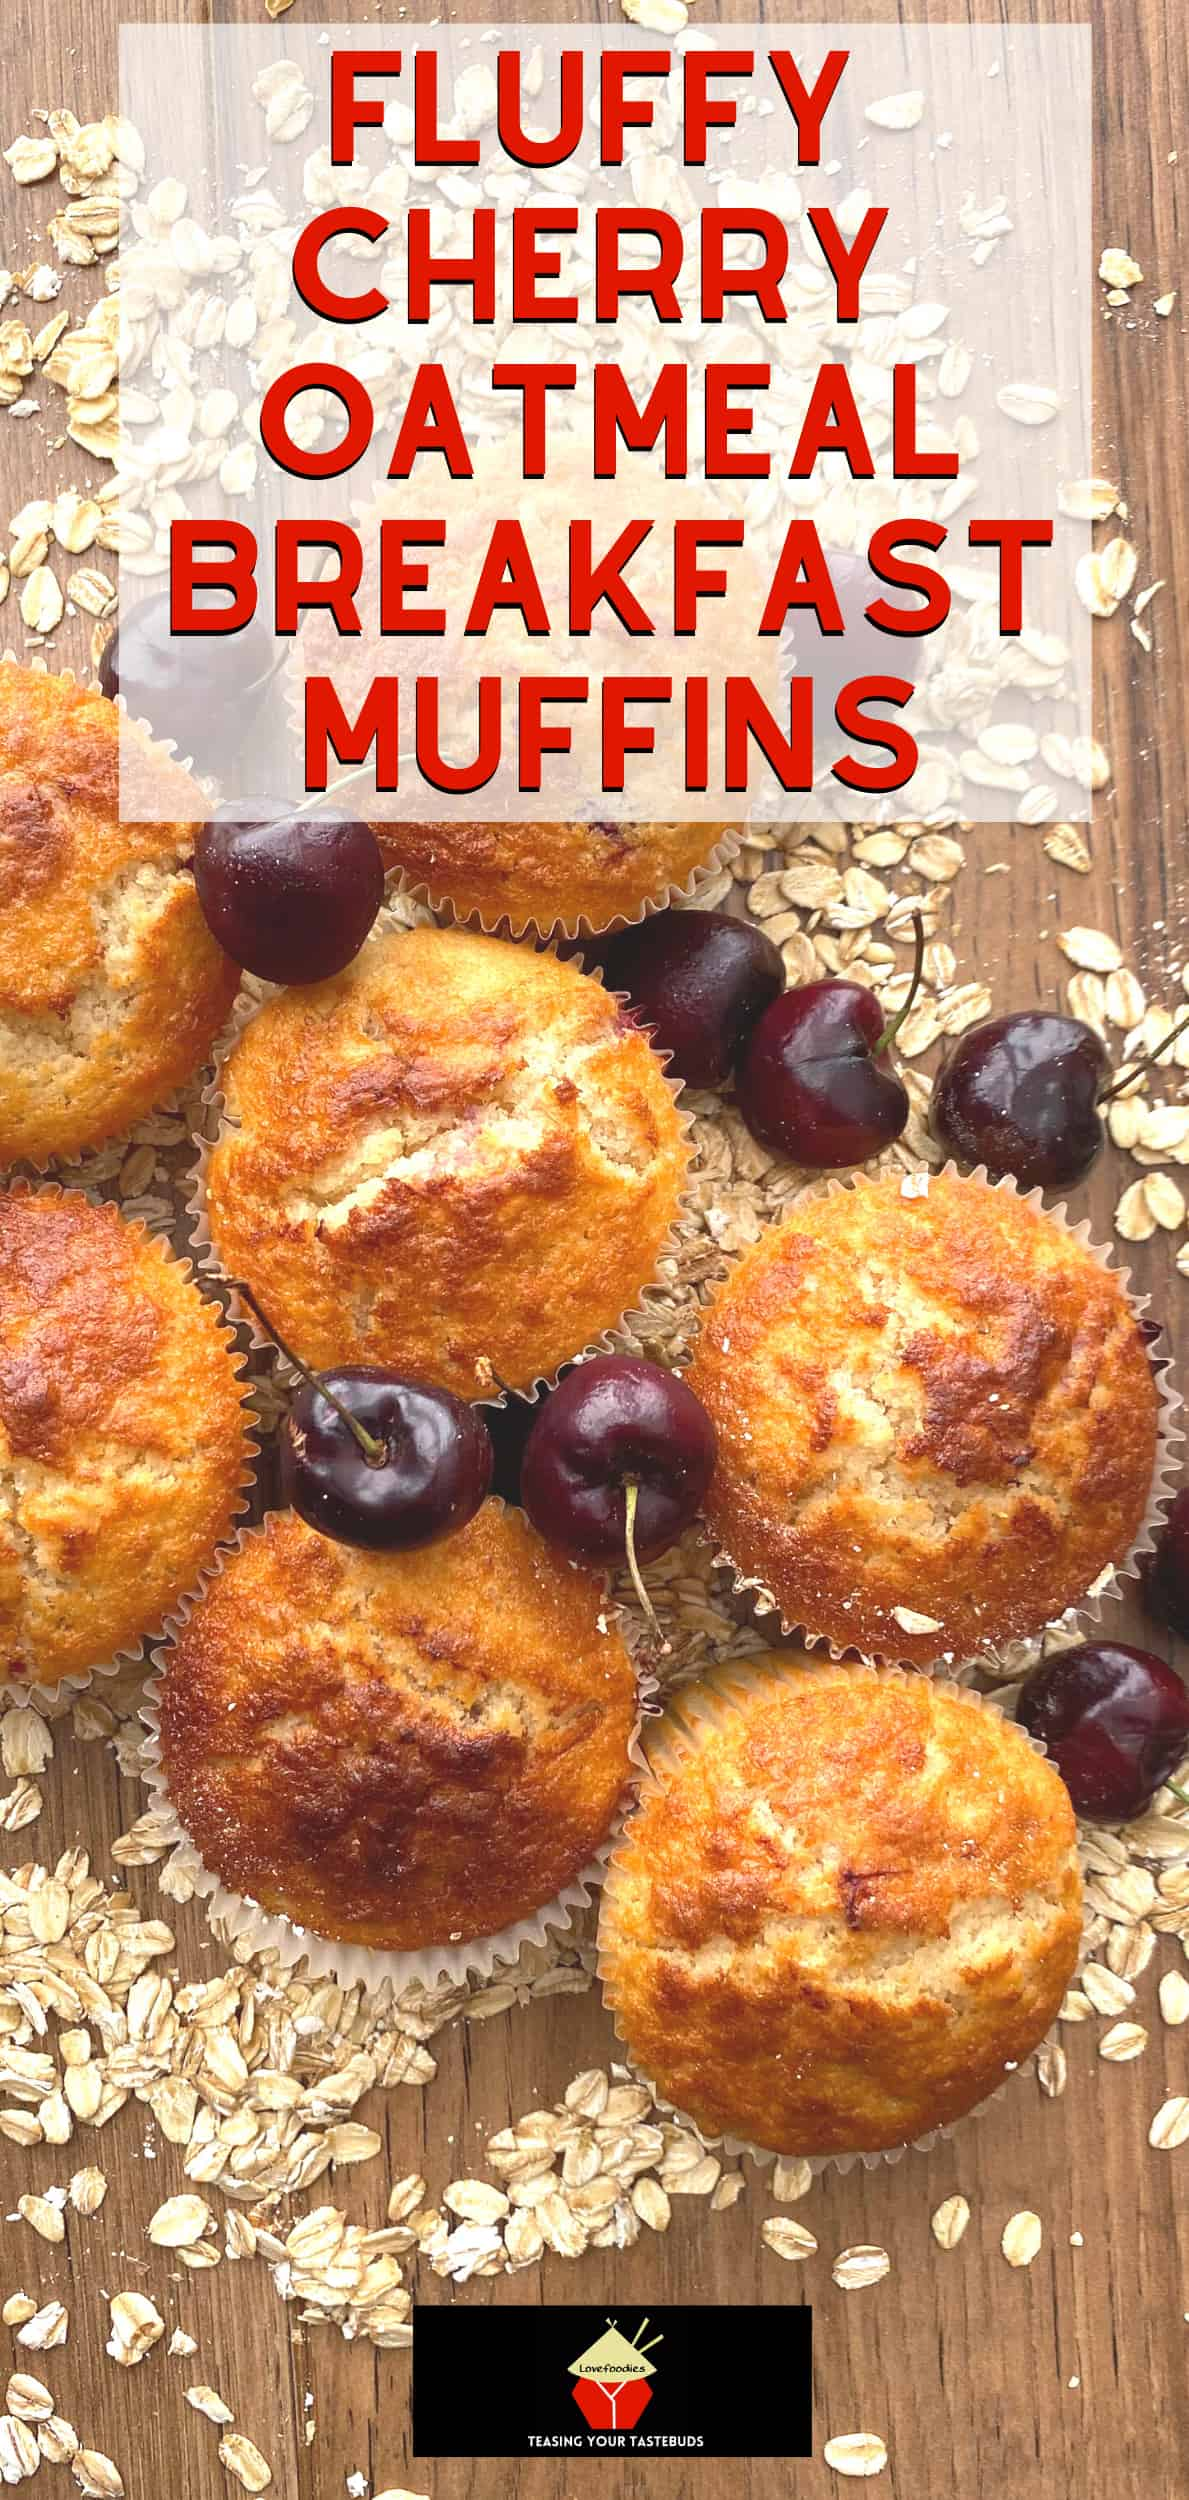 Fluffy Cherry Oatmeal Breakfast Muffins. Delicious, simple, soft and fluffy oatmeal muffins bursting with juicy cherries. Serve warm for breakfast or brunch